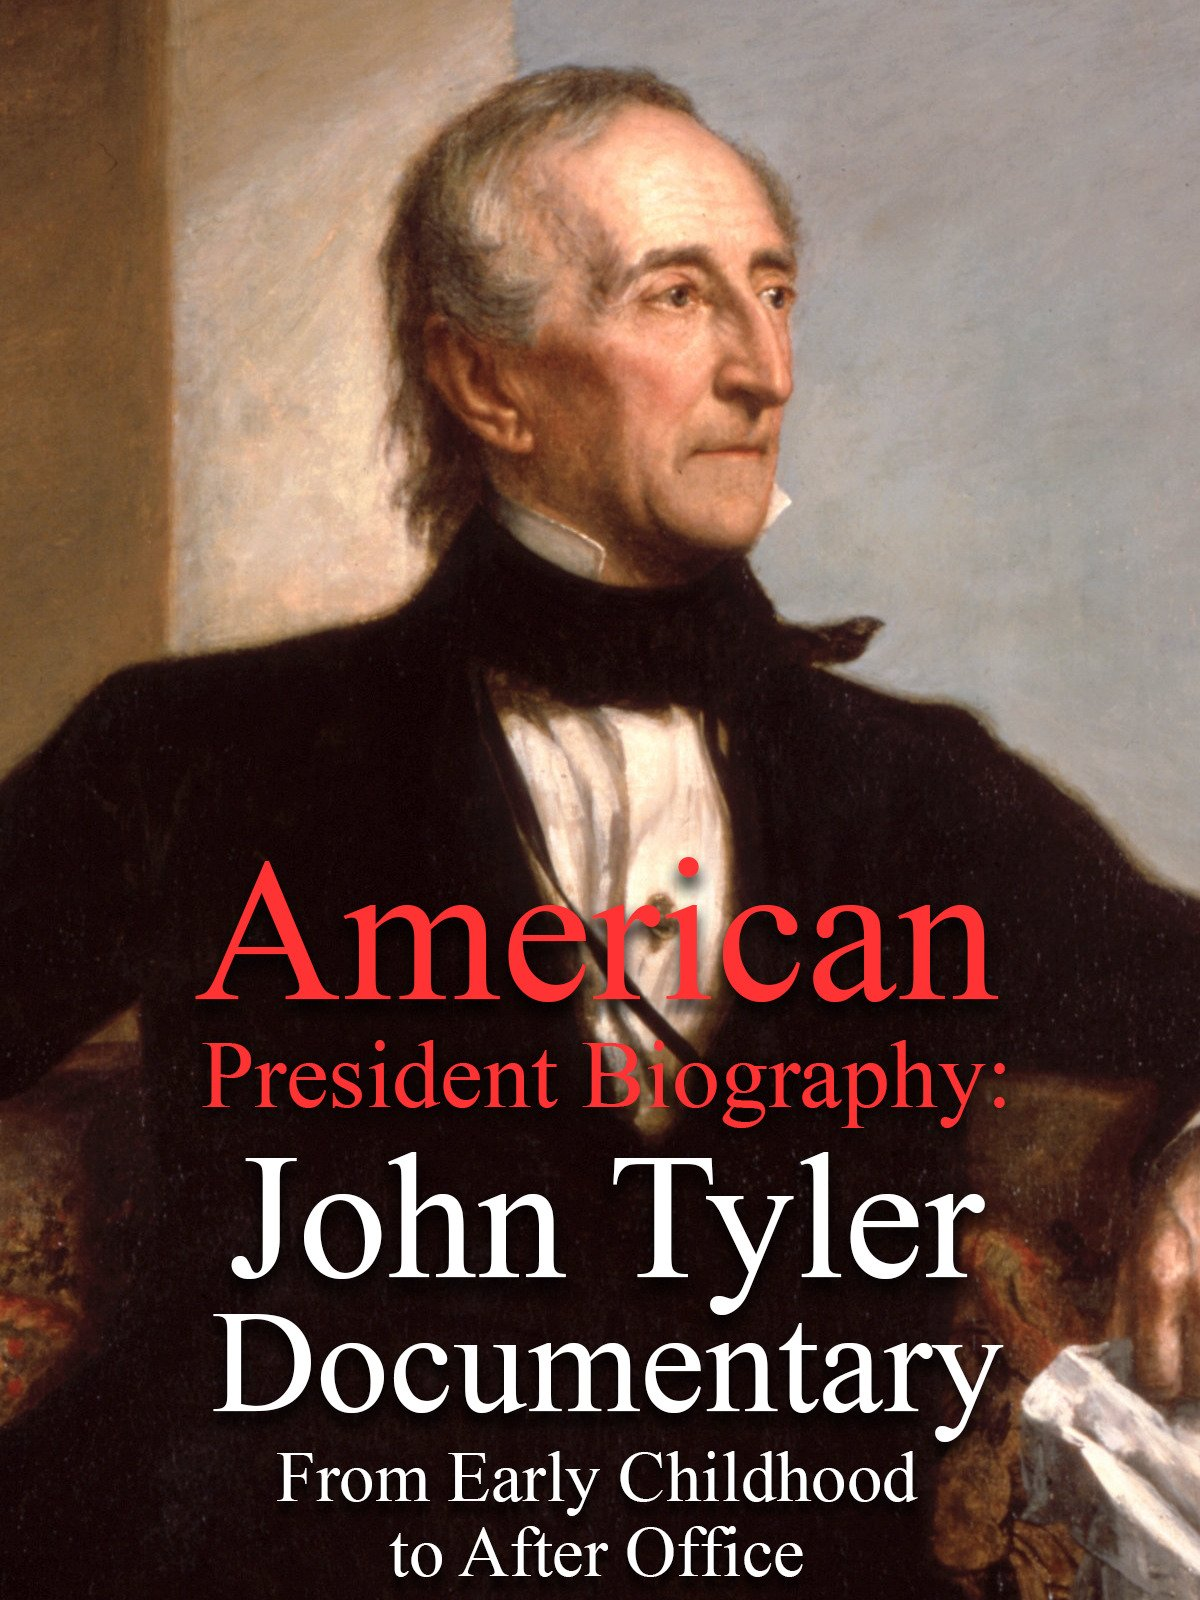 American President Biography: John Tyler Documentary From Early Childhood to After Office